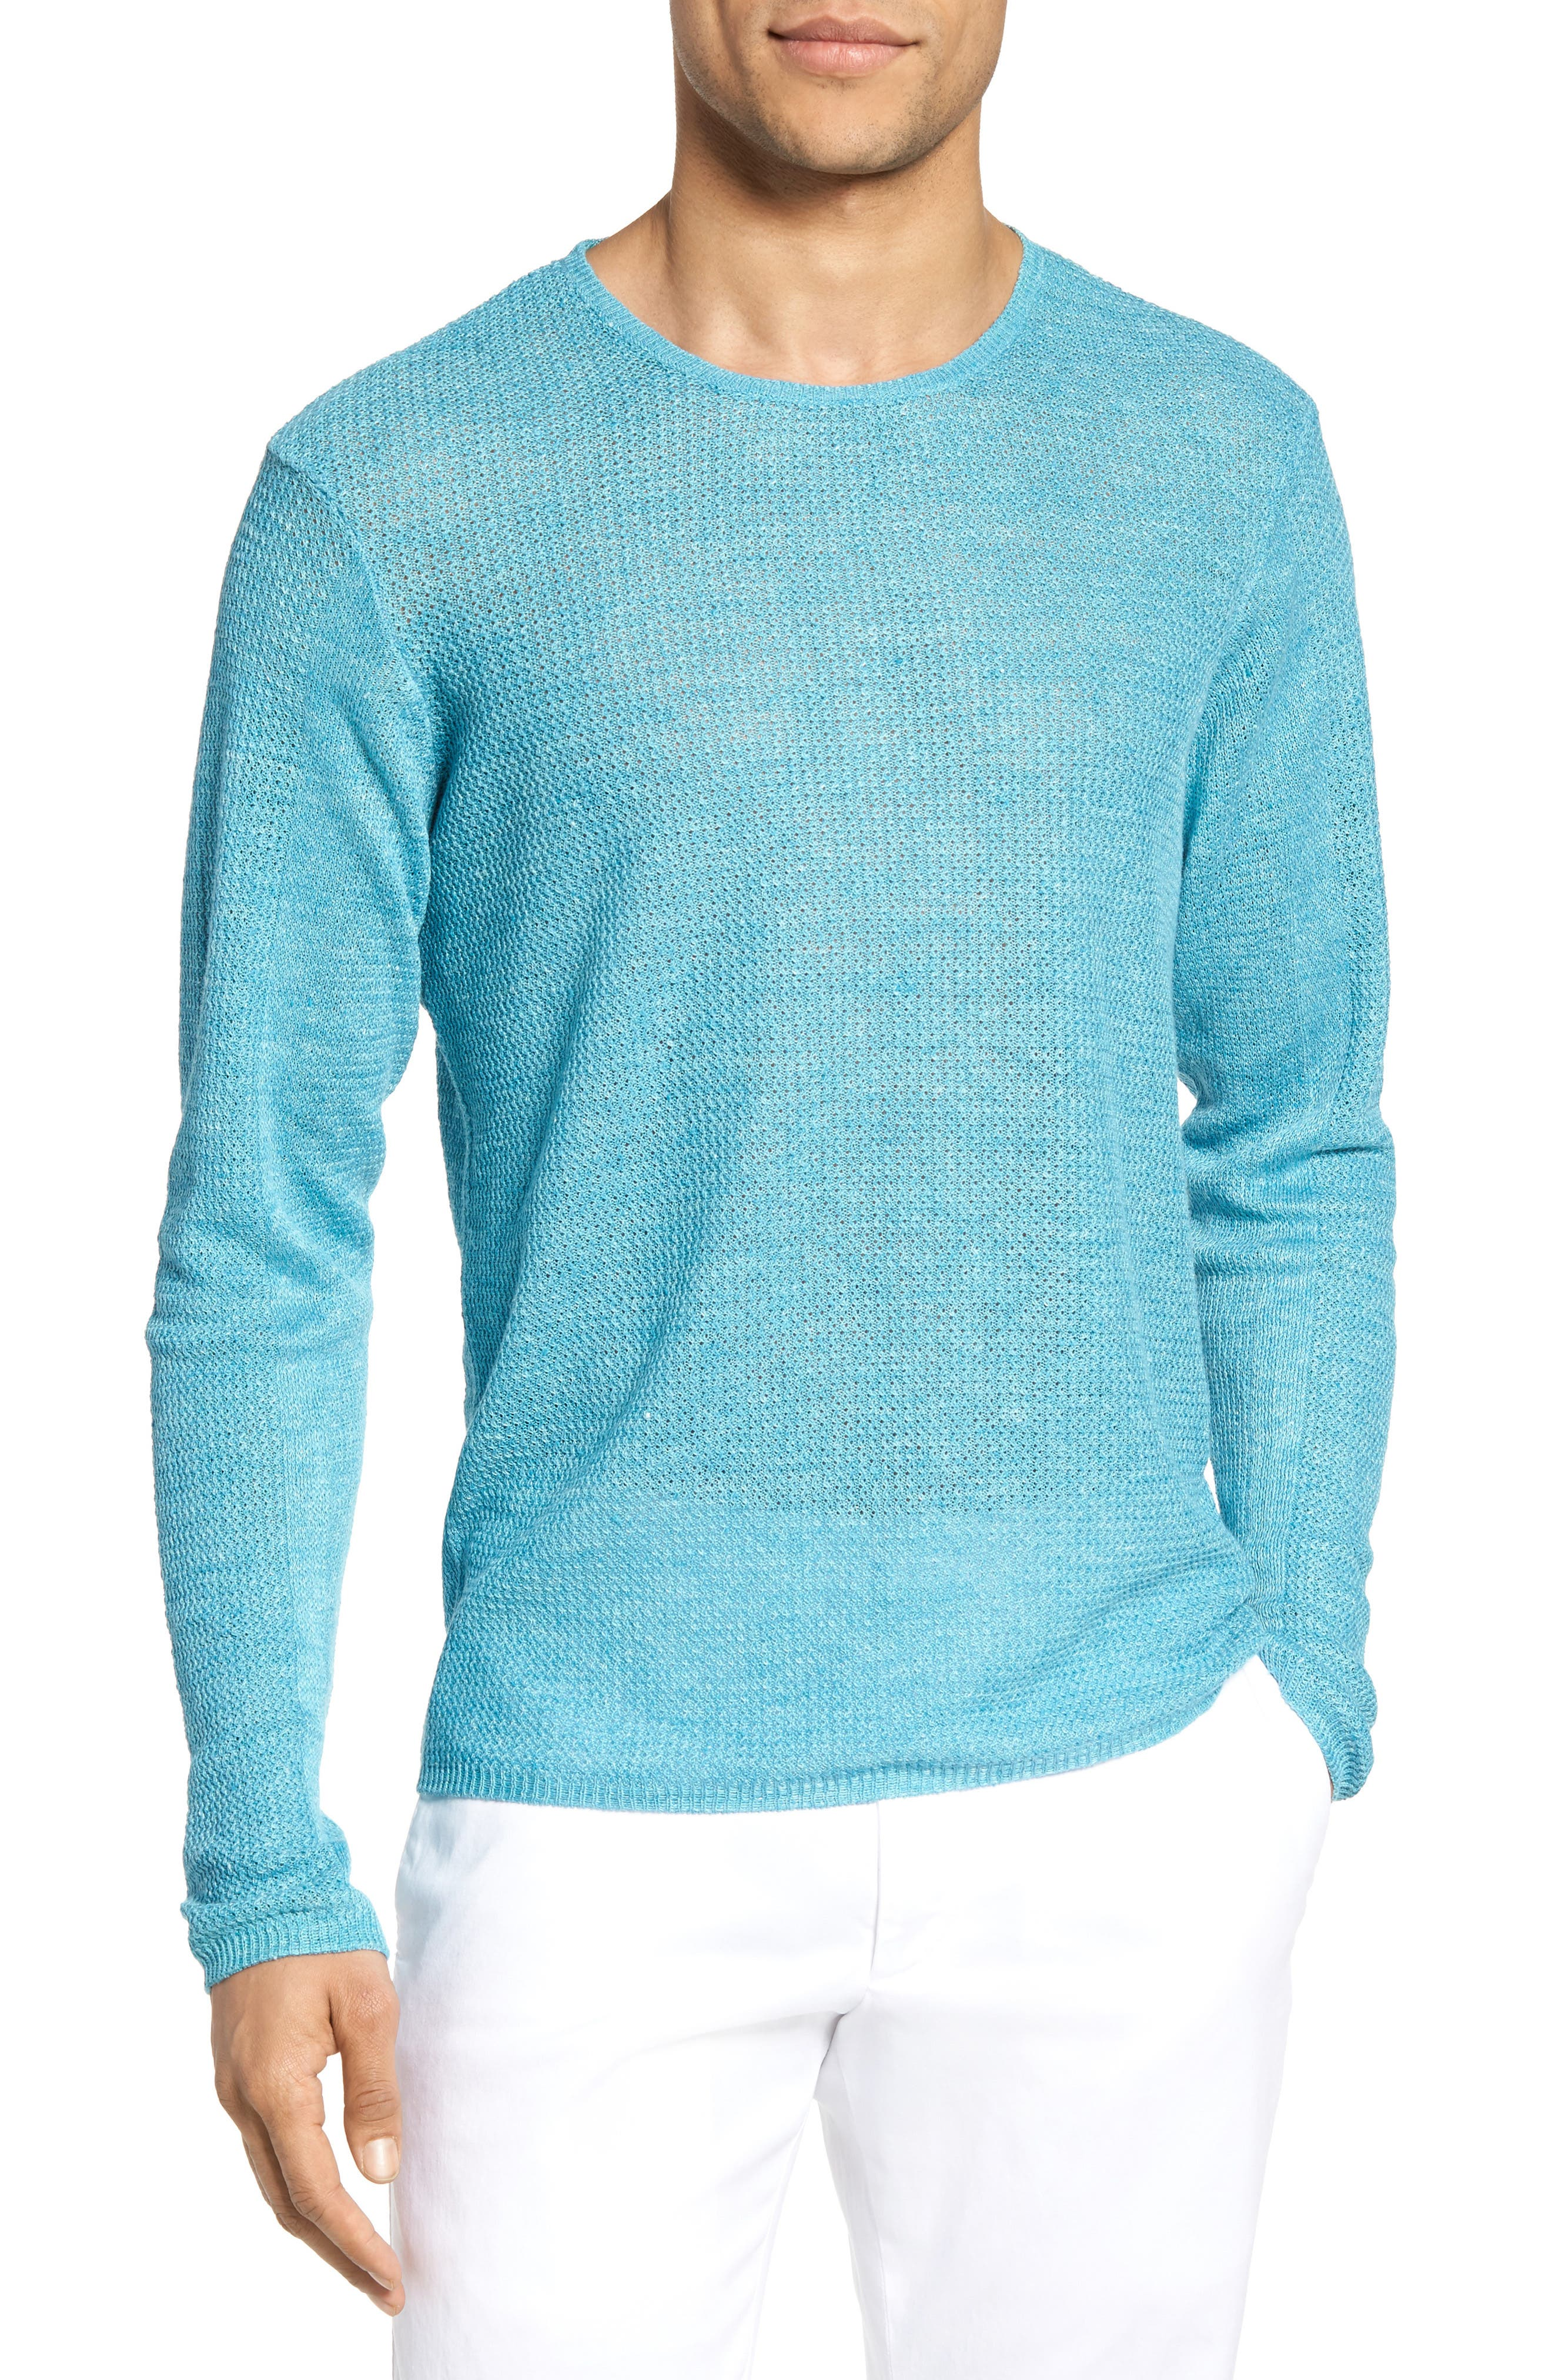 ZACHARY PRELL, Chapman Linen Sweater, Main thumbnail 1, color, 439